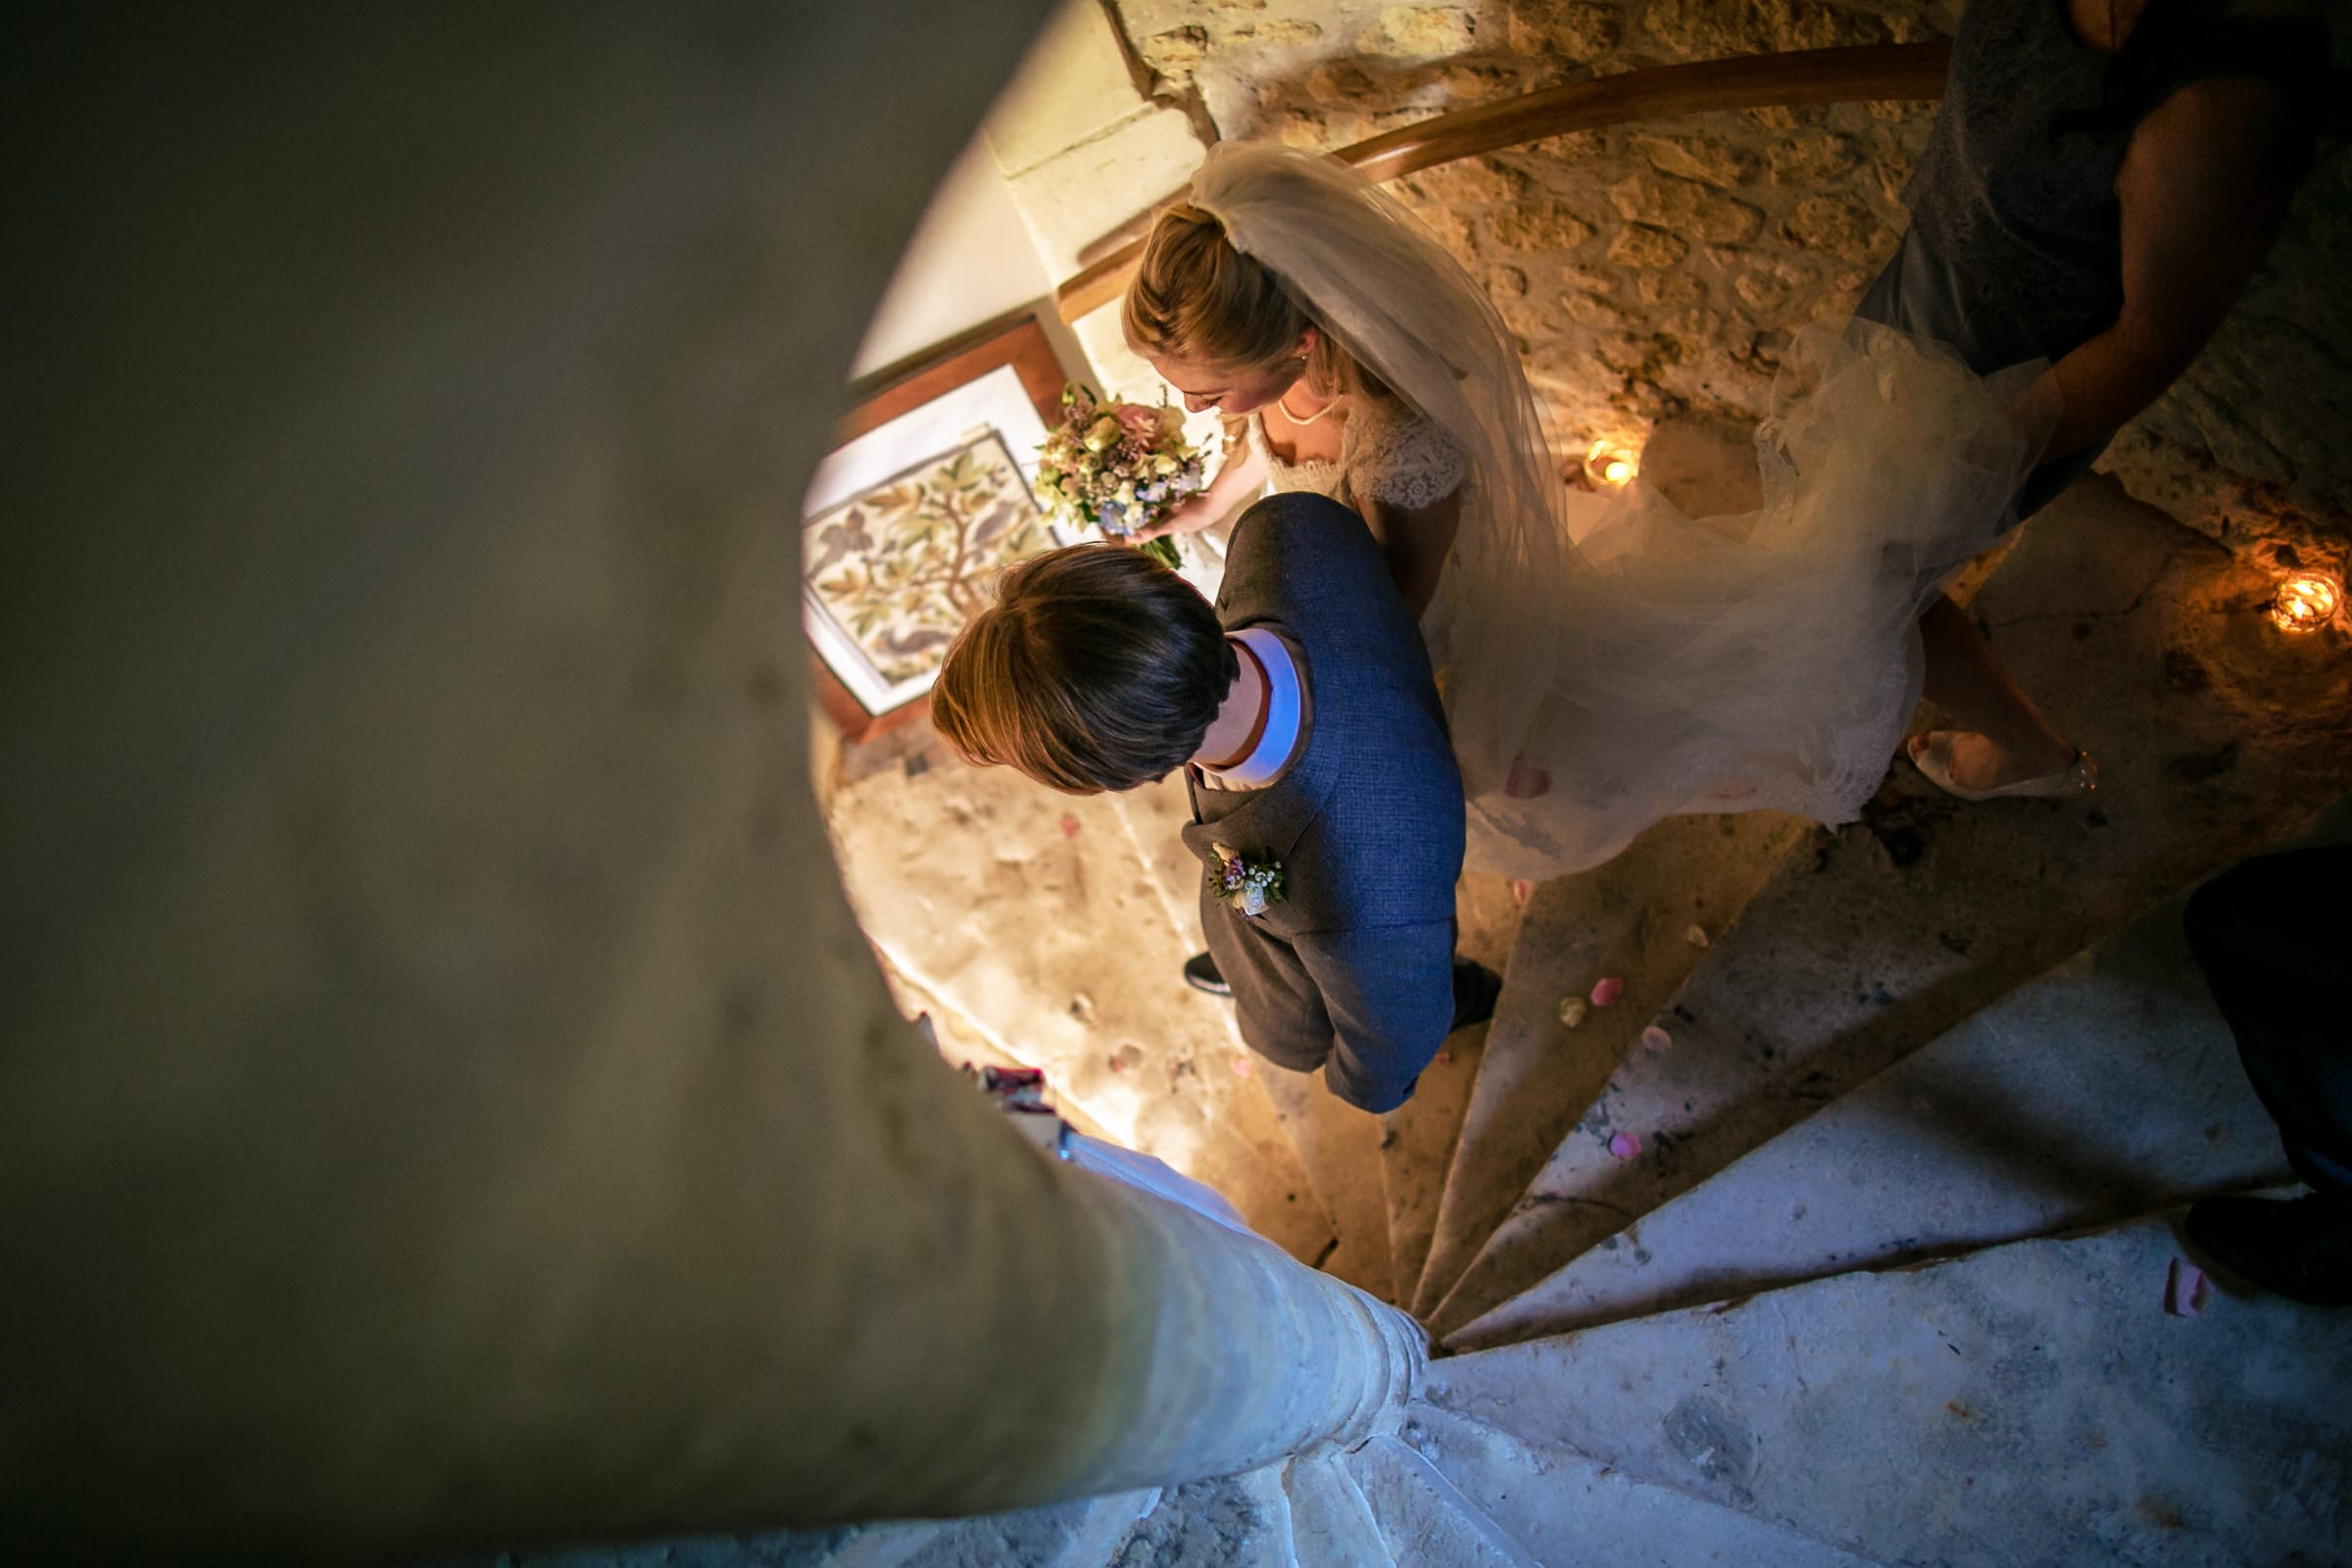 Bride and groom exiting down a stone spiral staircase during a French Chateau wedding in Normandy, France